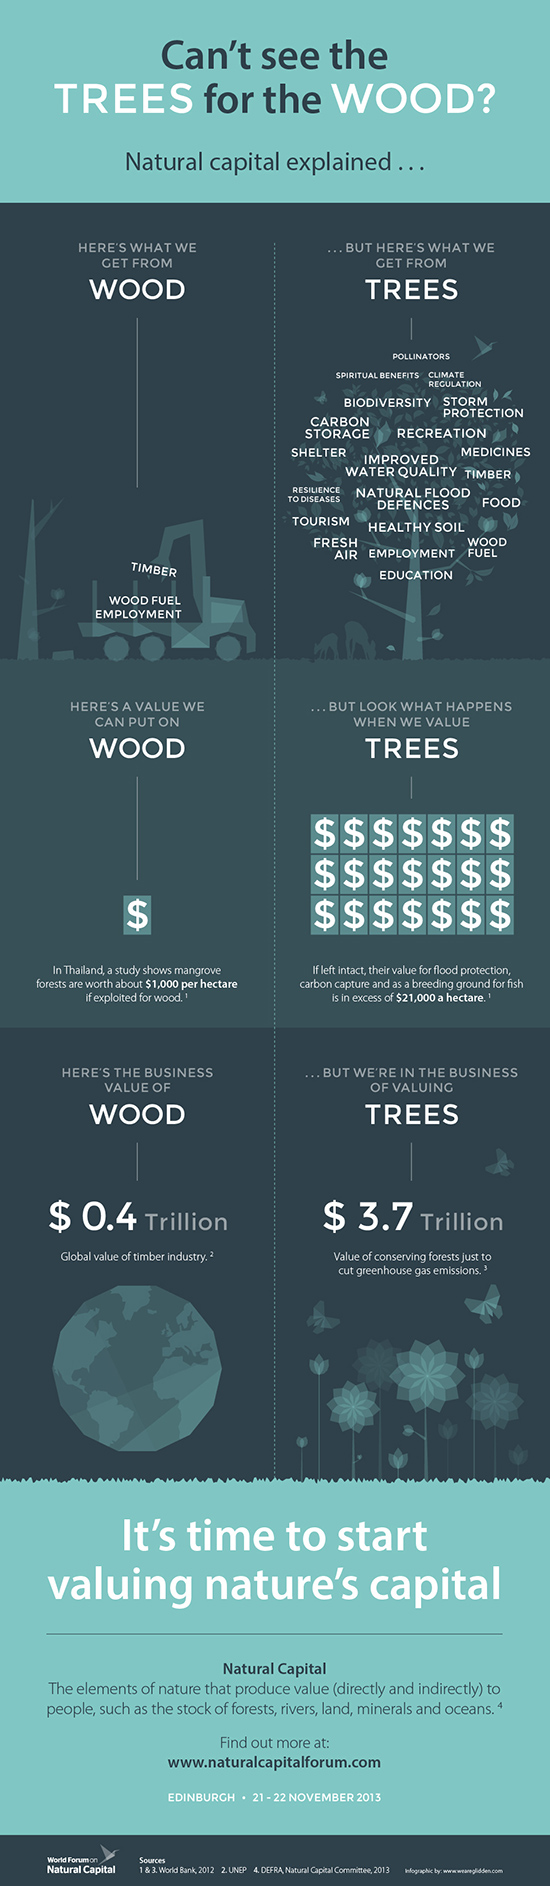 Can't see the TREES for the WOOD - Infographic